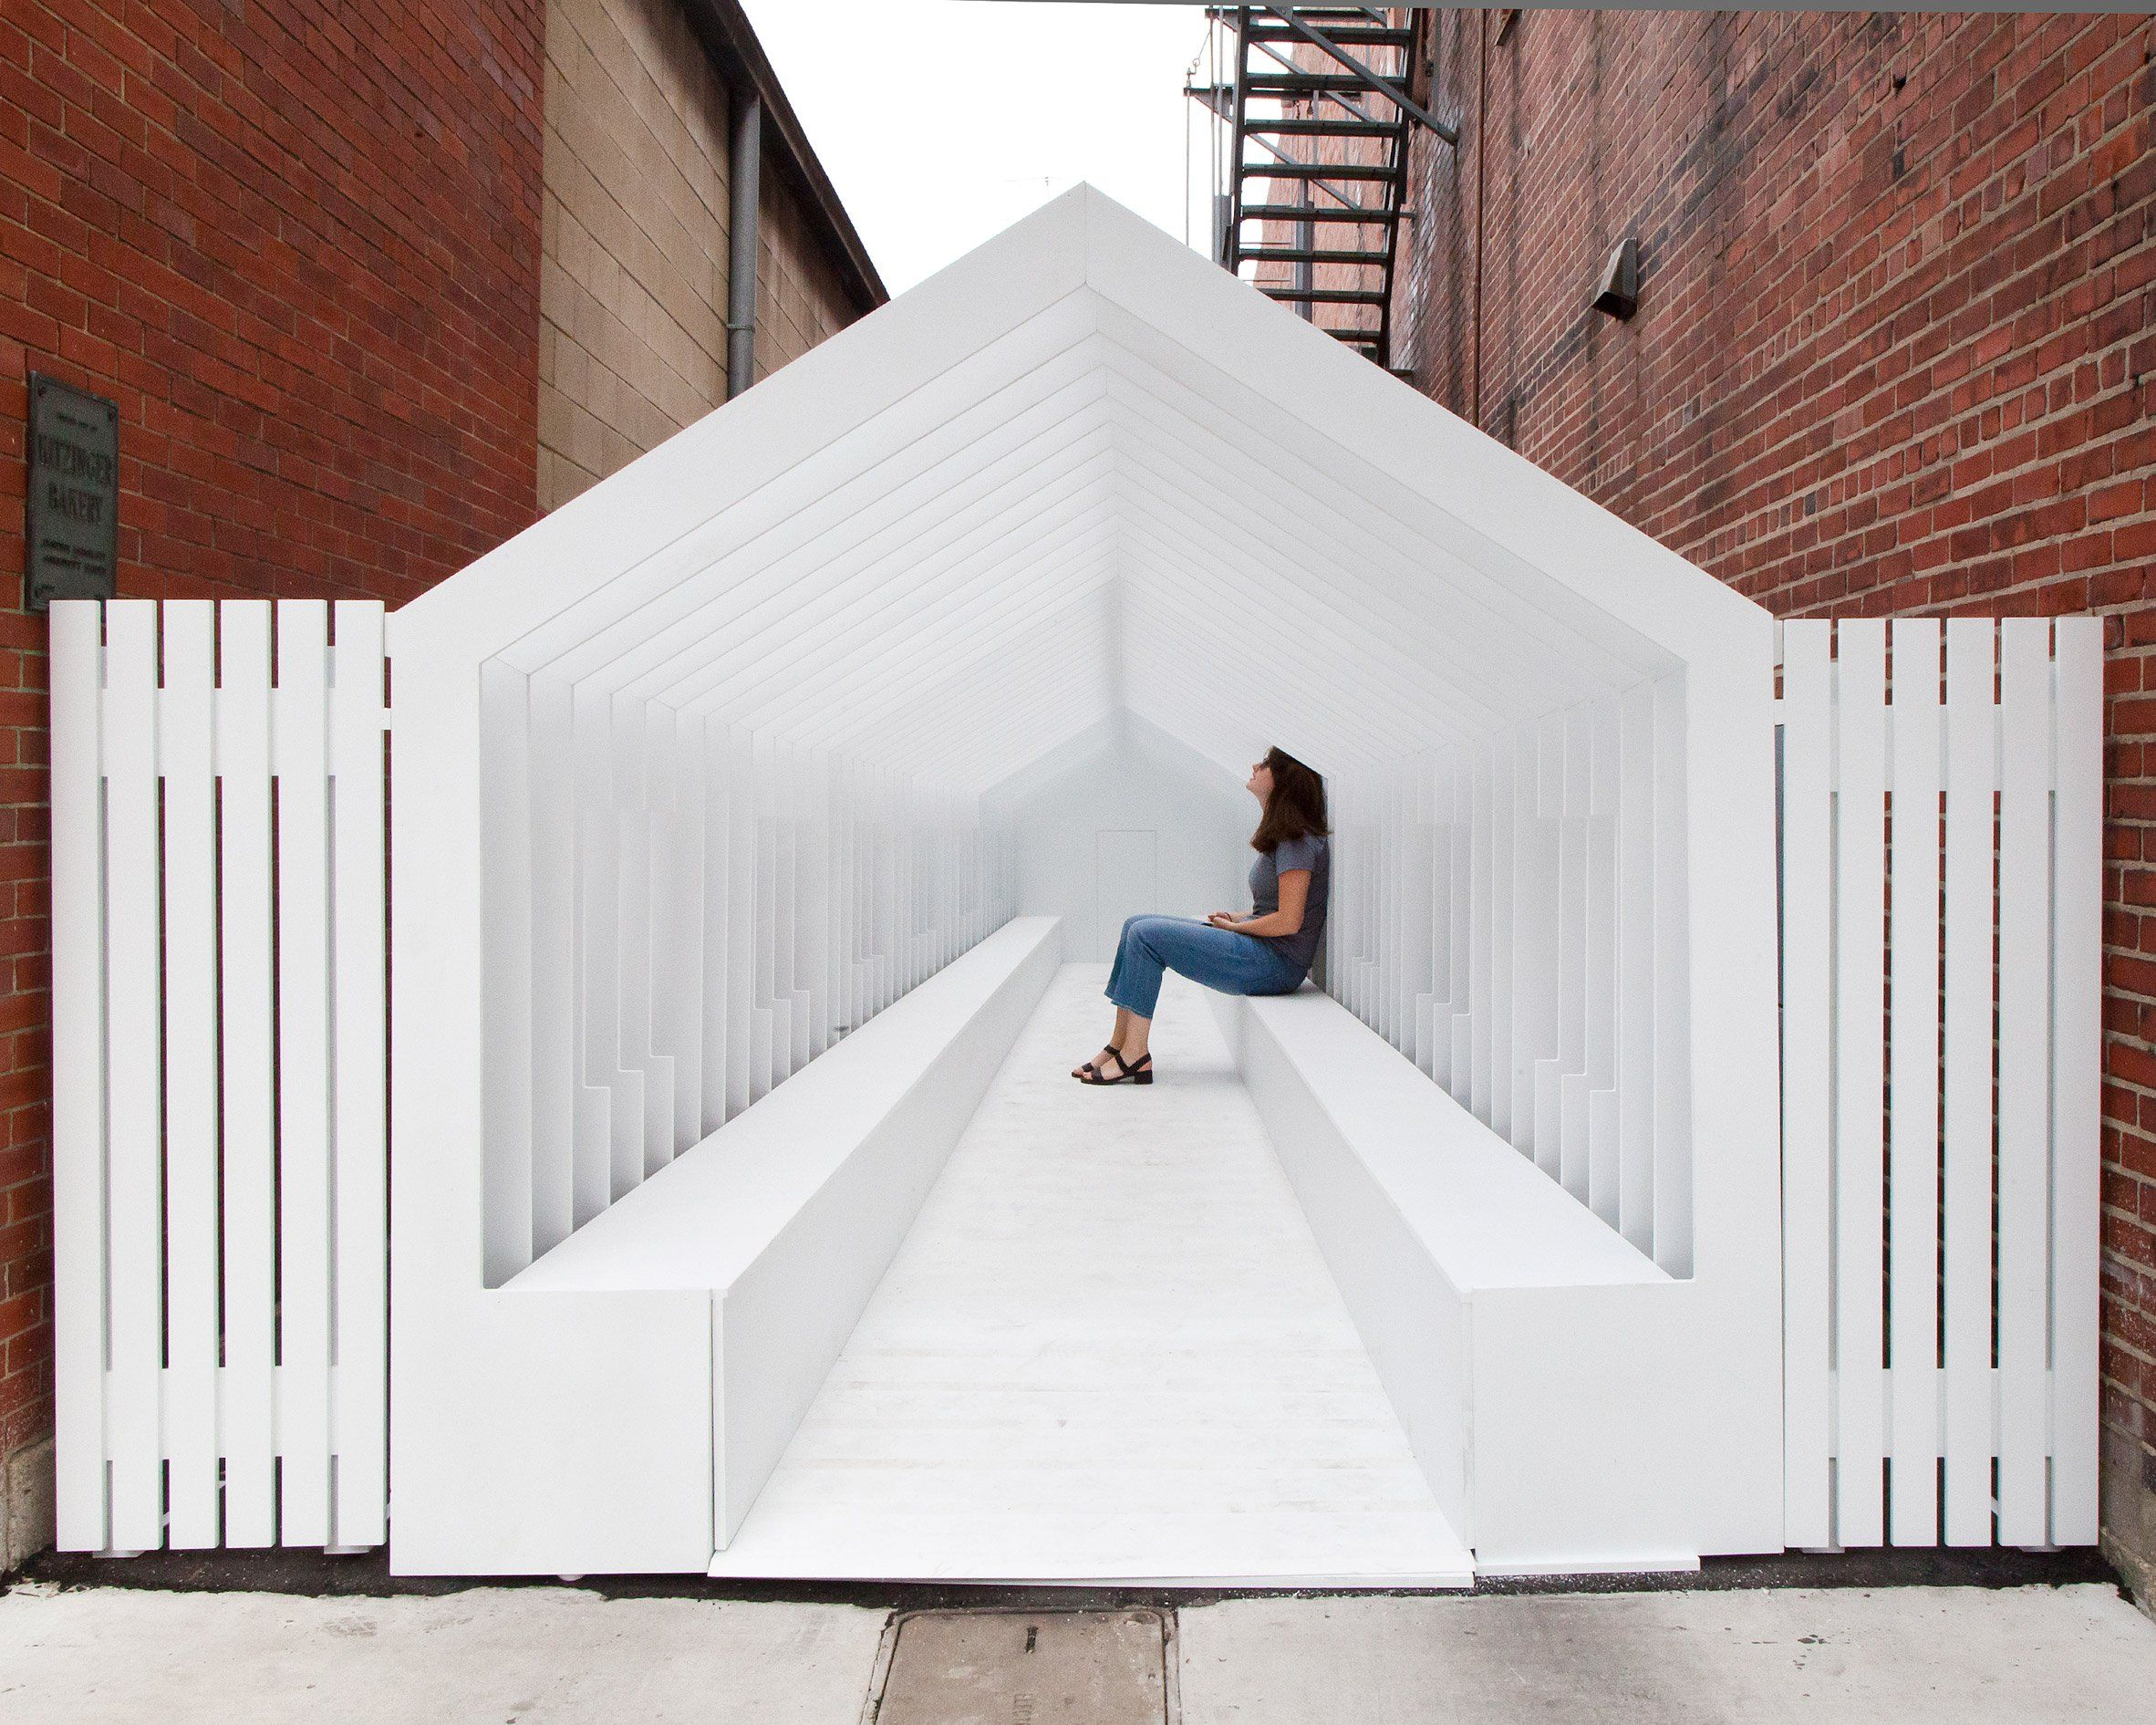 The Series Of Washington Street Installations Was Created For The Exhibit Columbus Festival Which Installation Architecture Temporary Architecture Play Houses